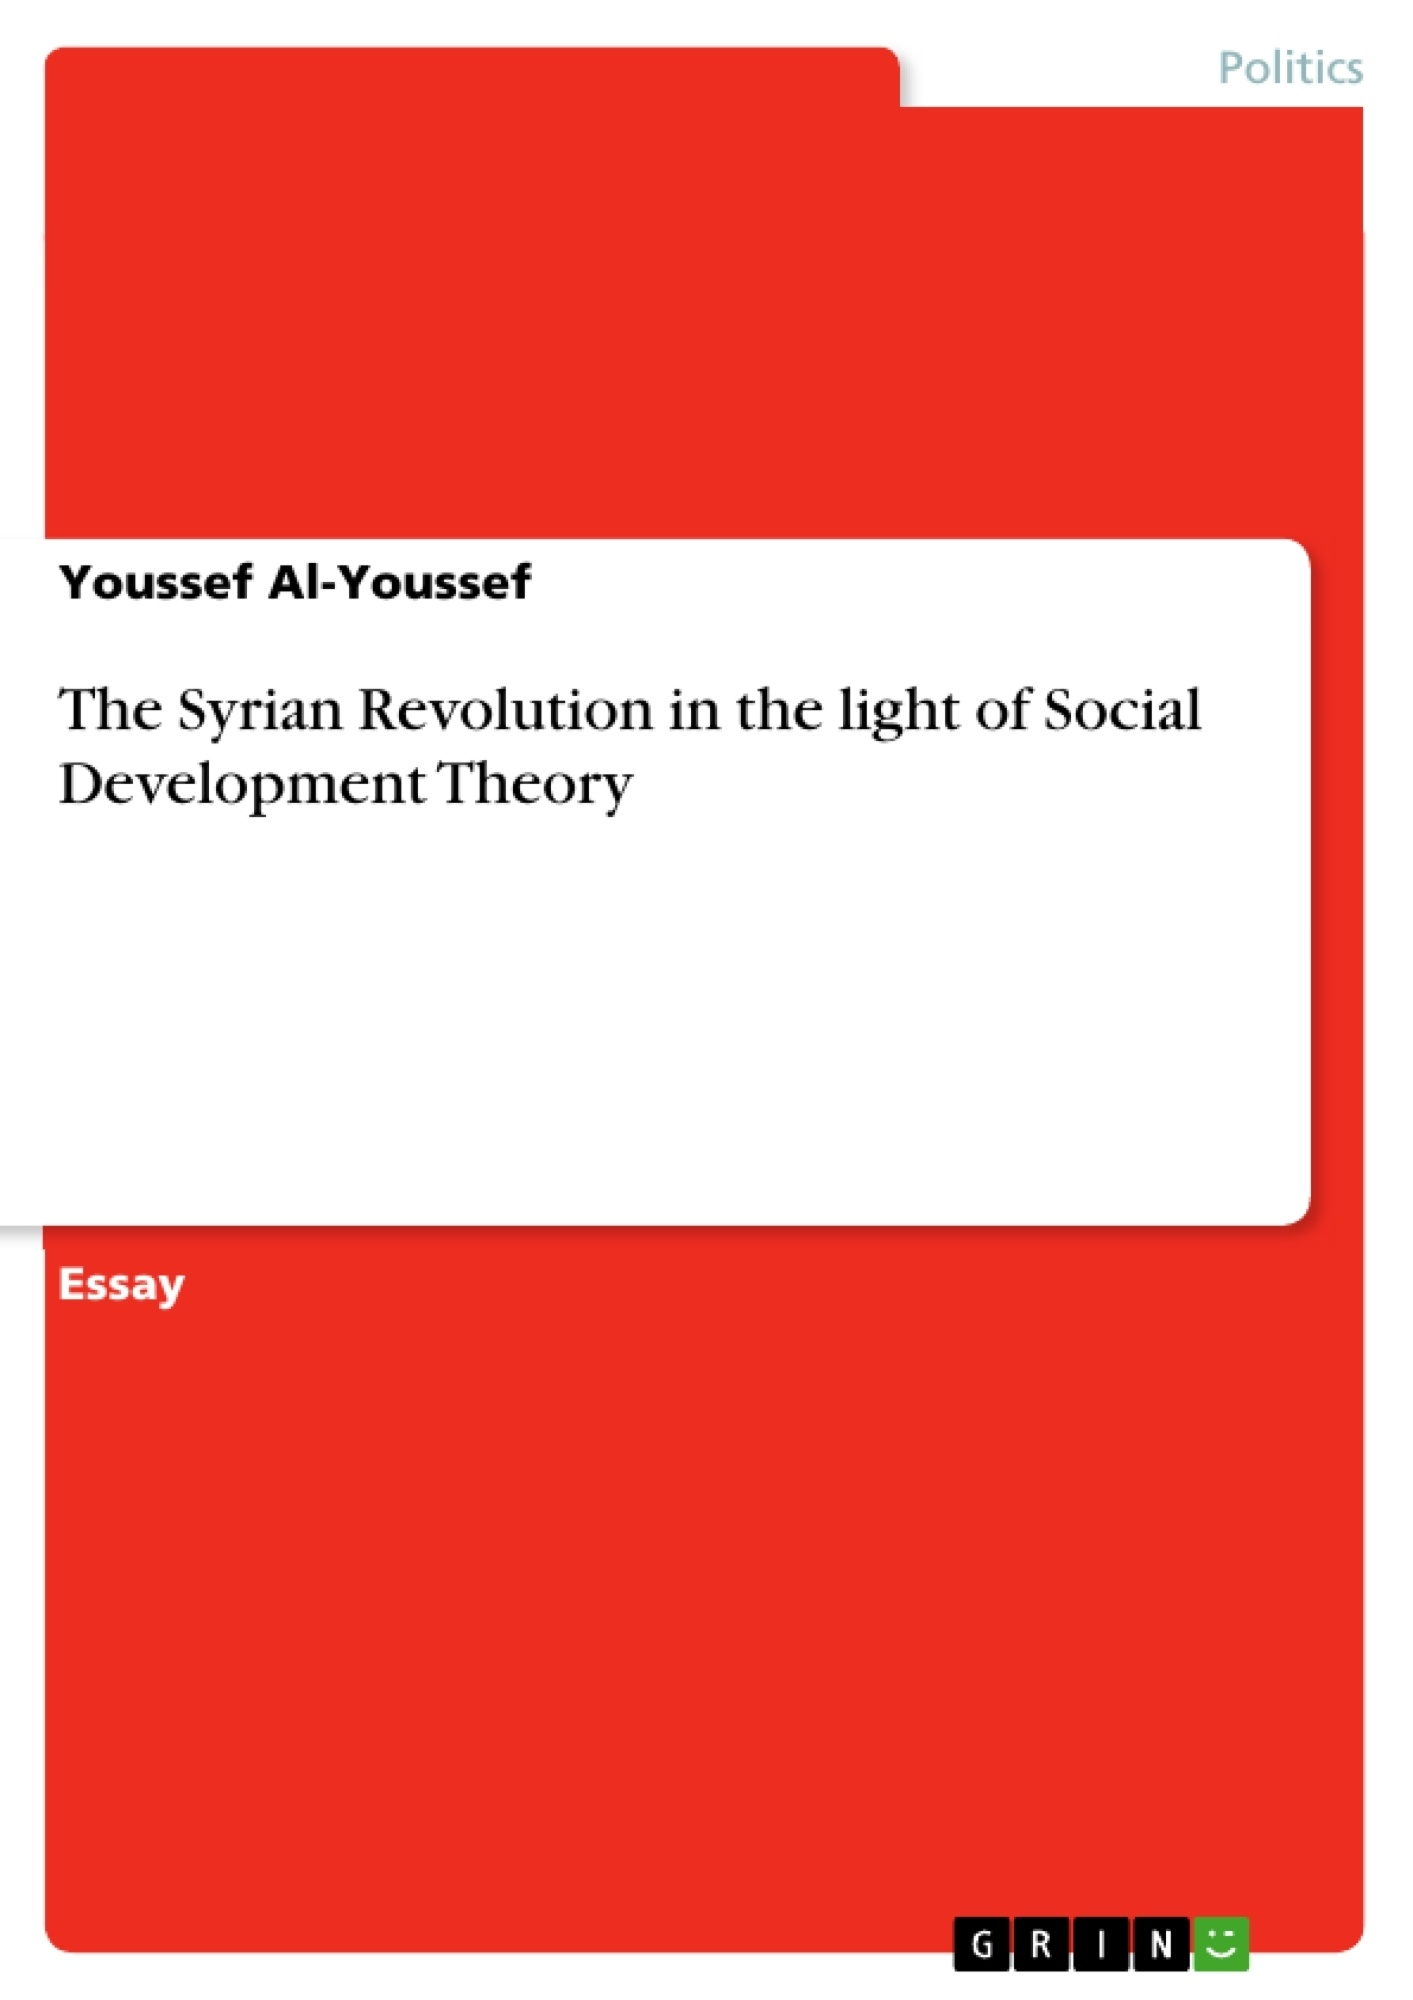 the syrian revolution in the light of social development theory  upload your own papers earn money and win an iphone x